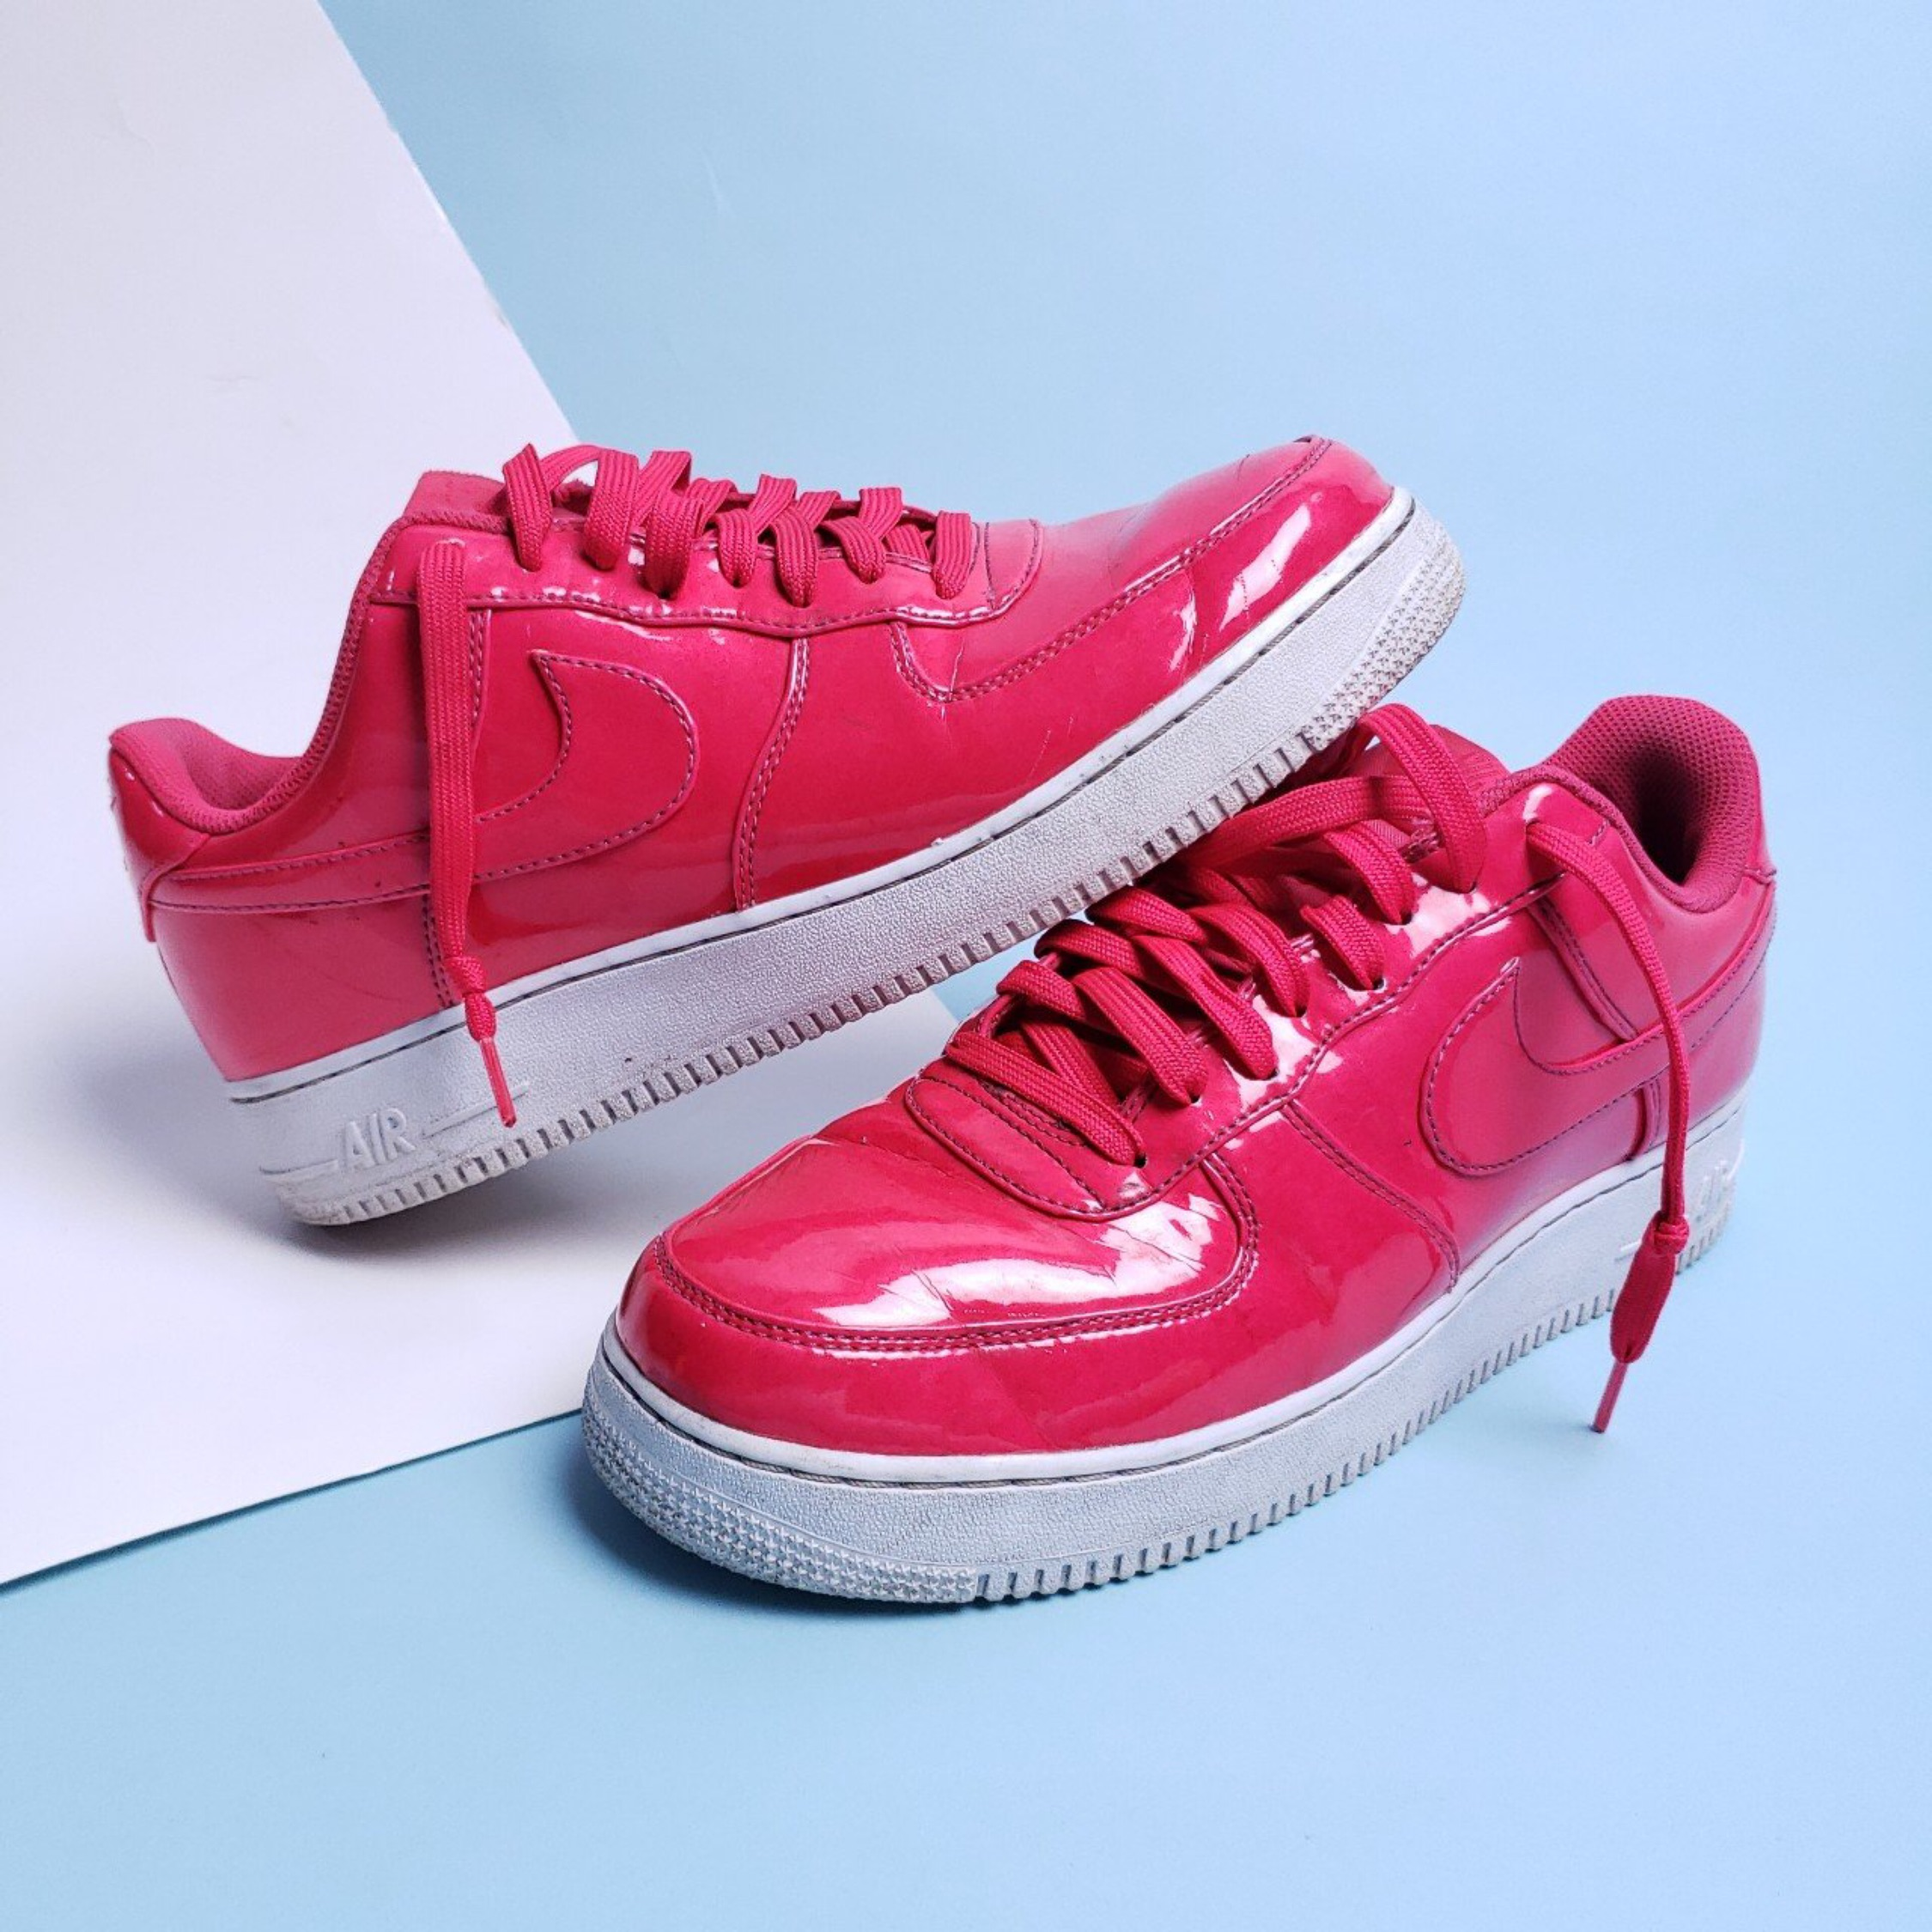 Nike Air Force 1 Pink Patent Leather